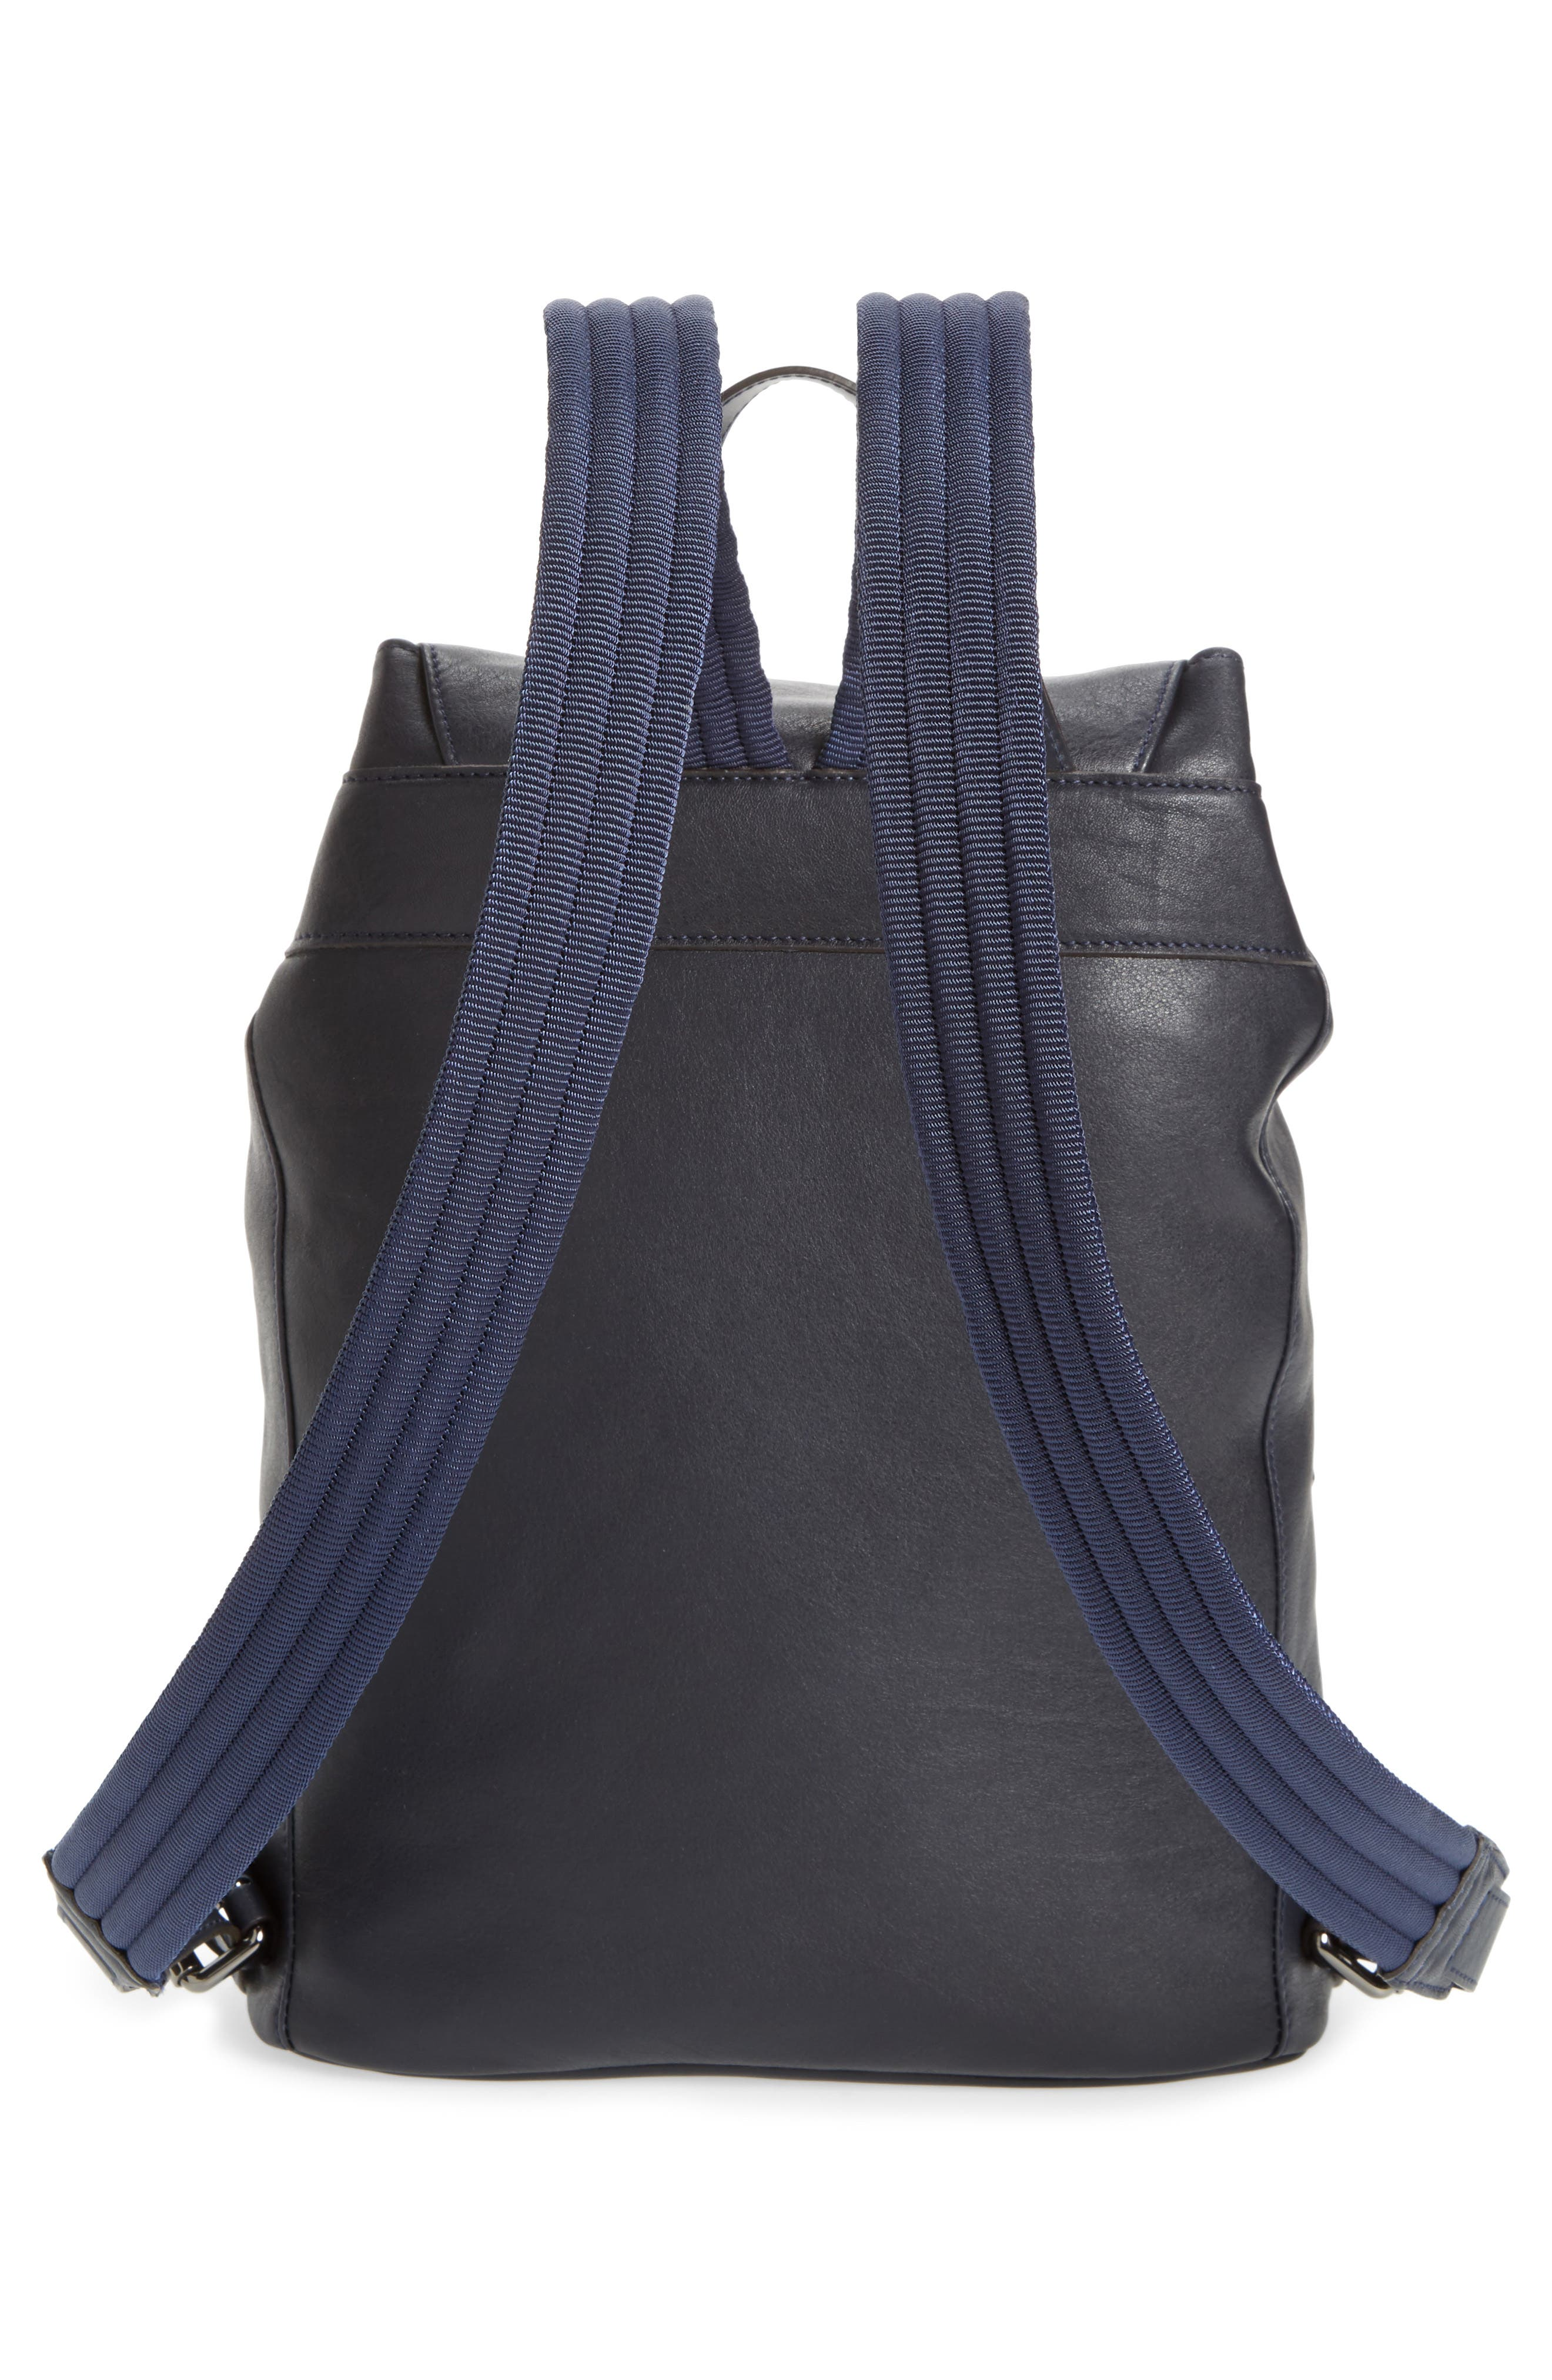 3D Leather Backpack,                             Alternate thumbnail 2, color,                             Midnight Blue